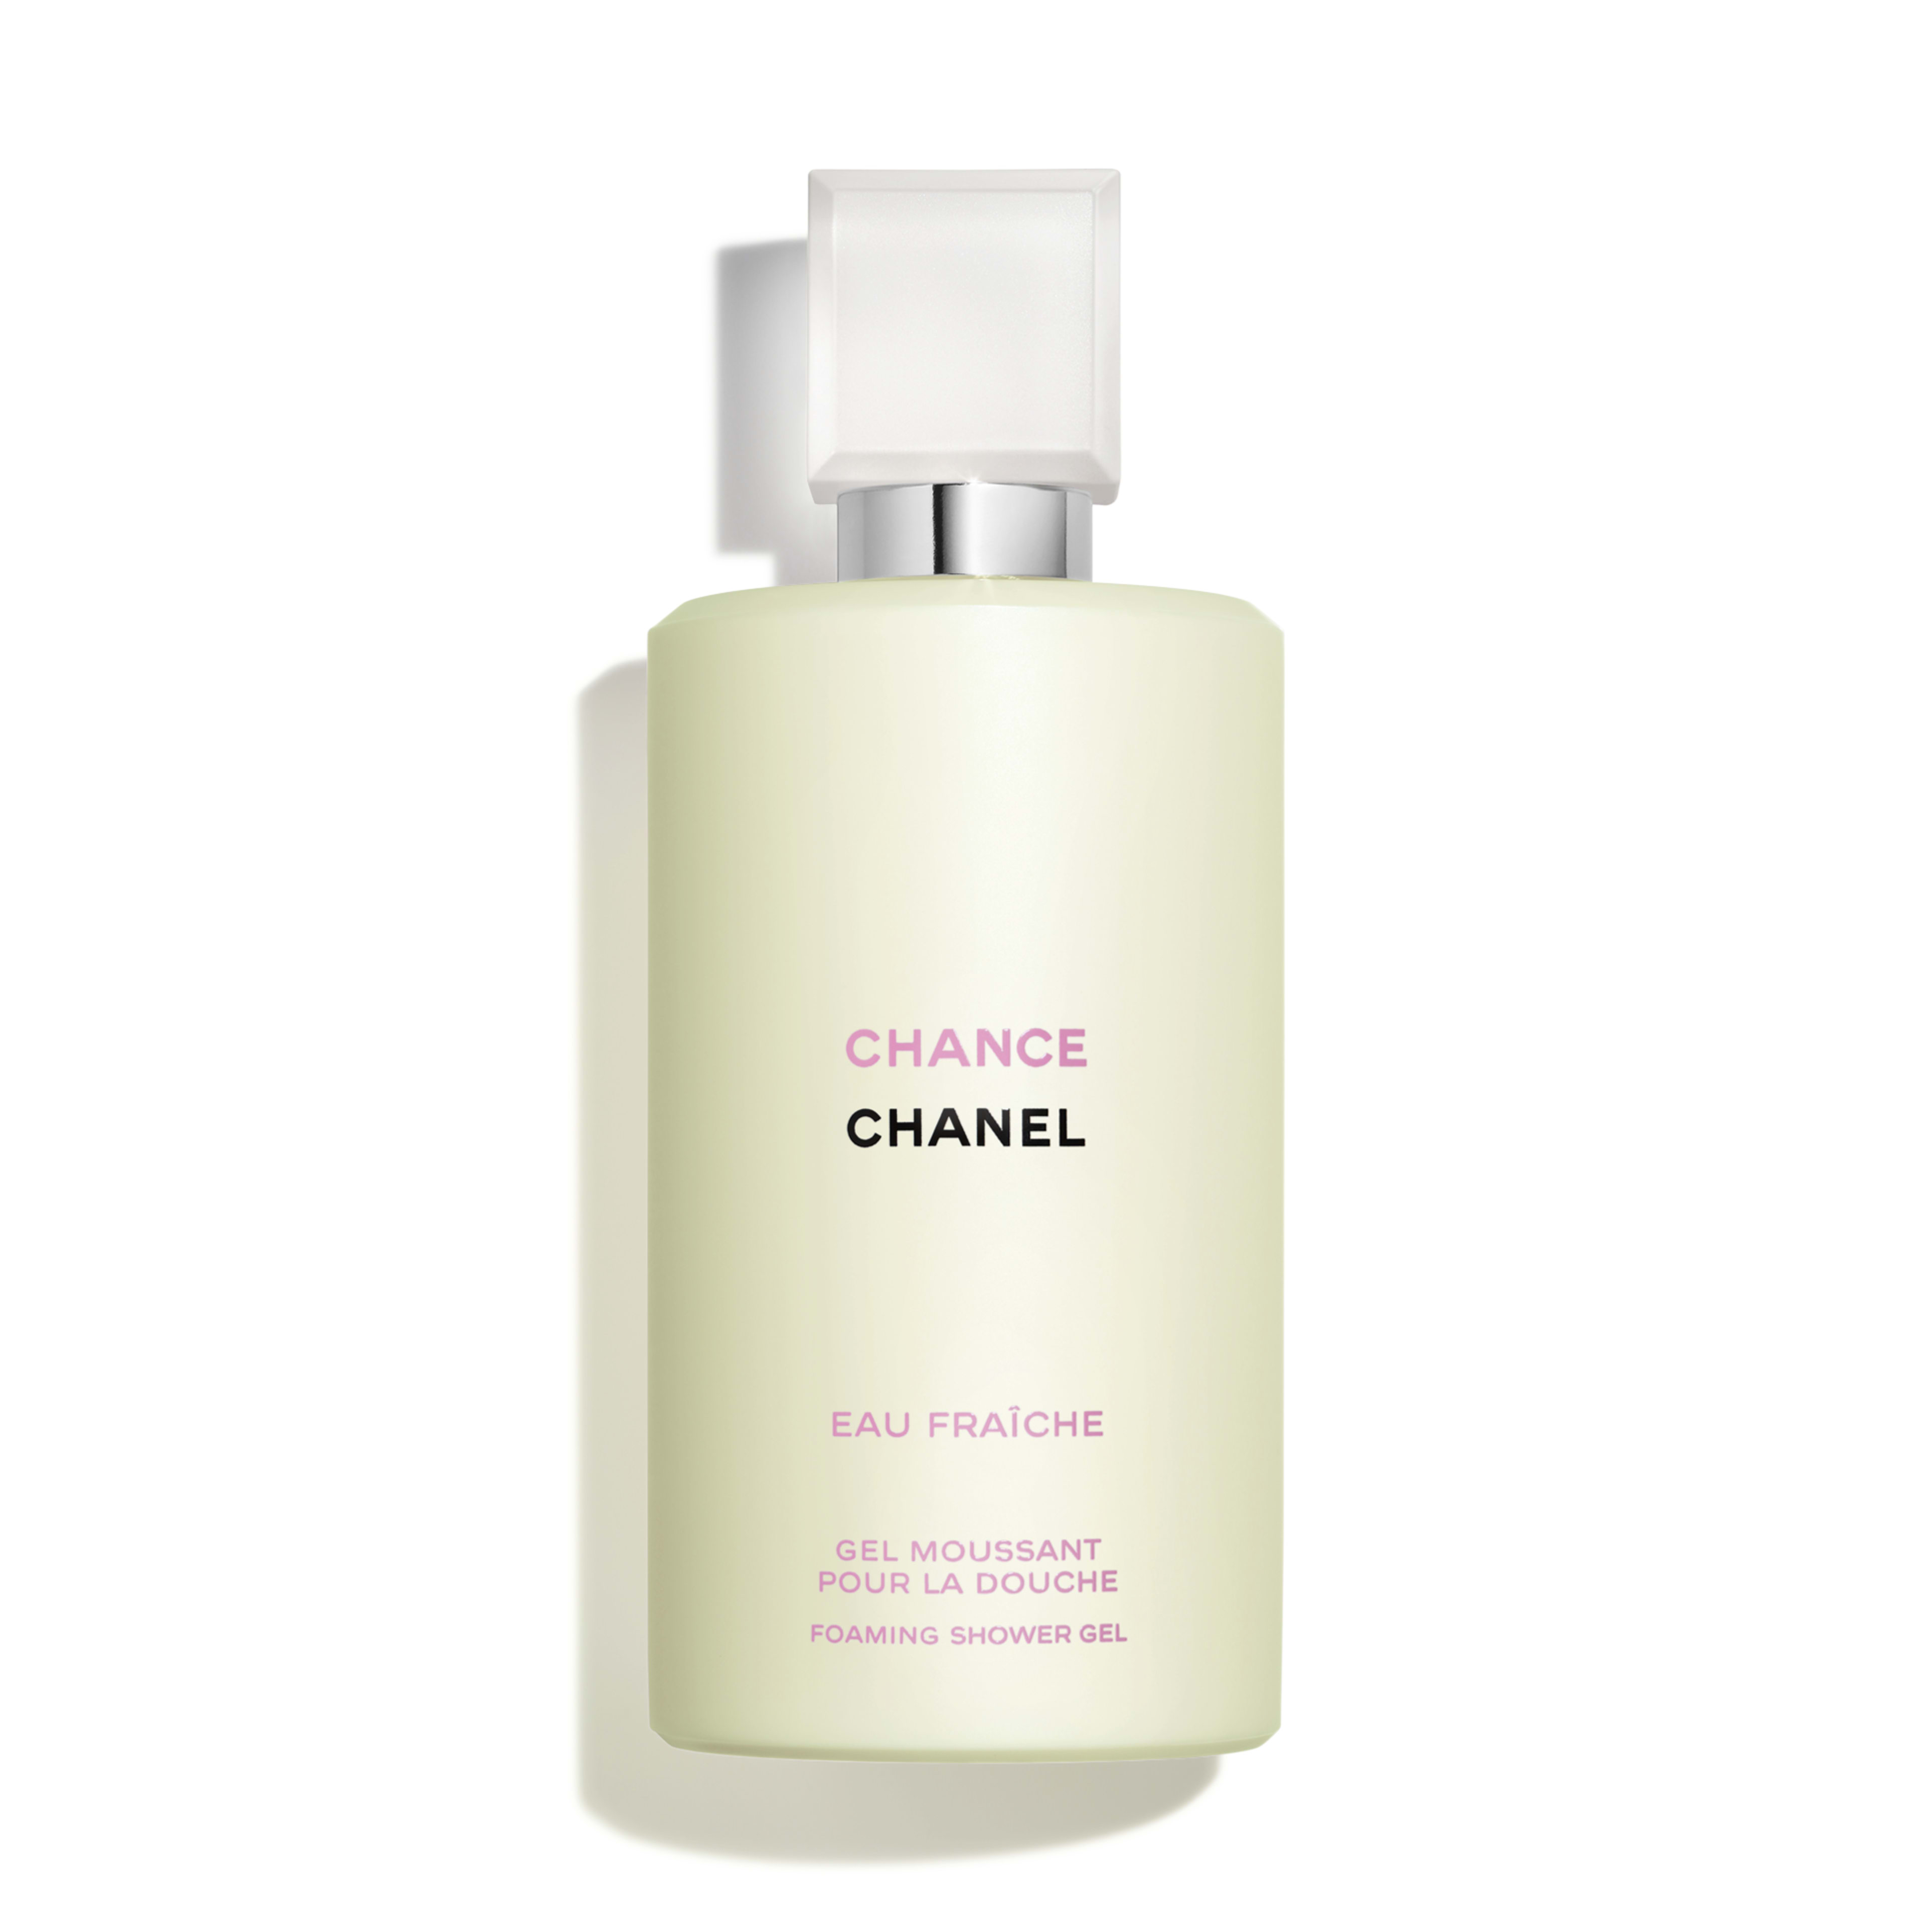 16a5743b7 CHANCE EAU FRAÎCHE Foaming Shower Gel Ref. 136965